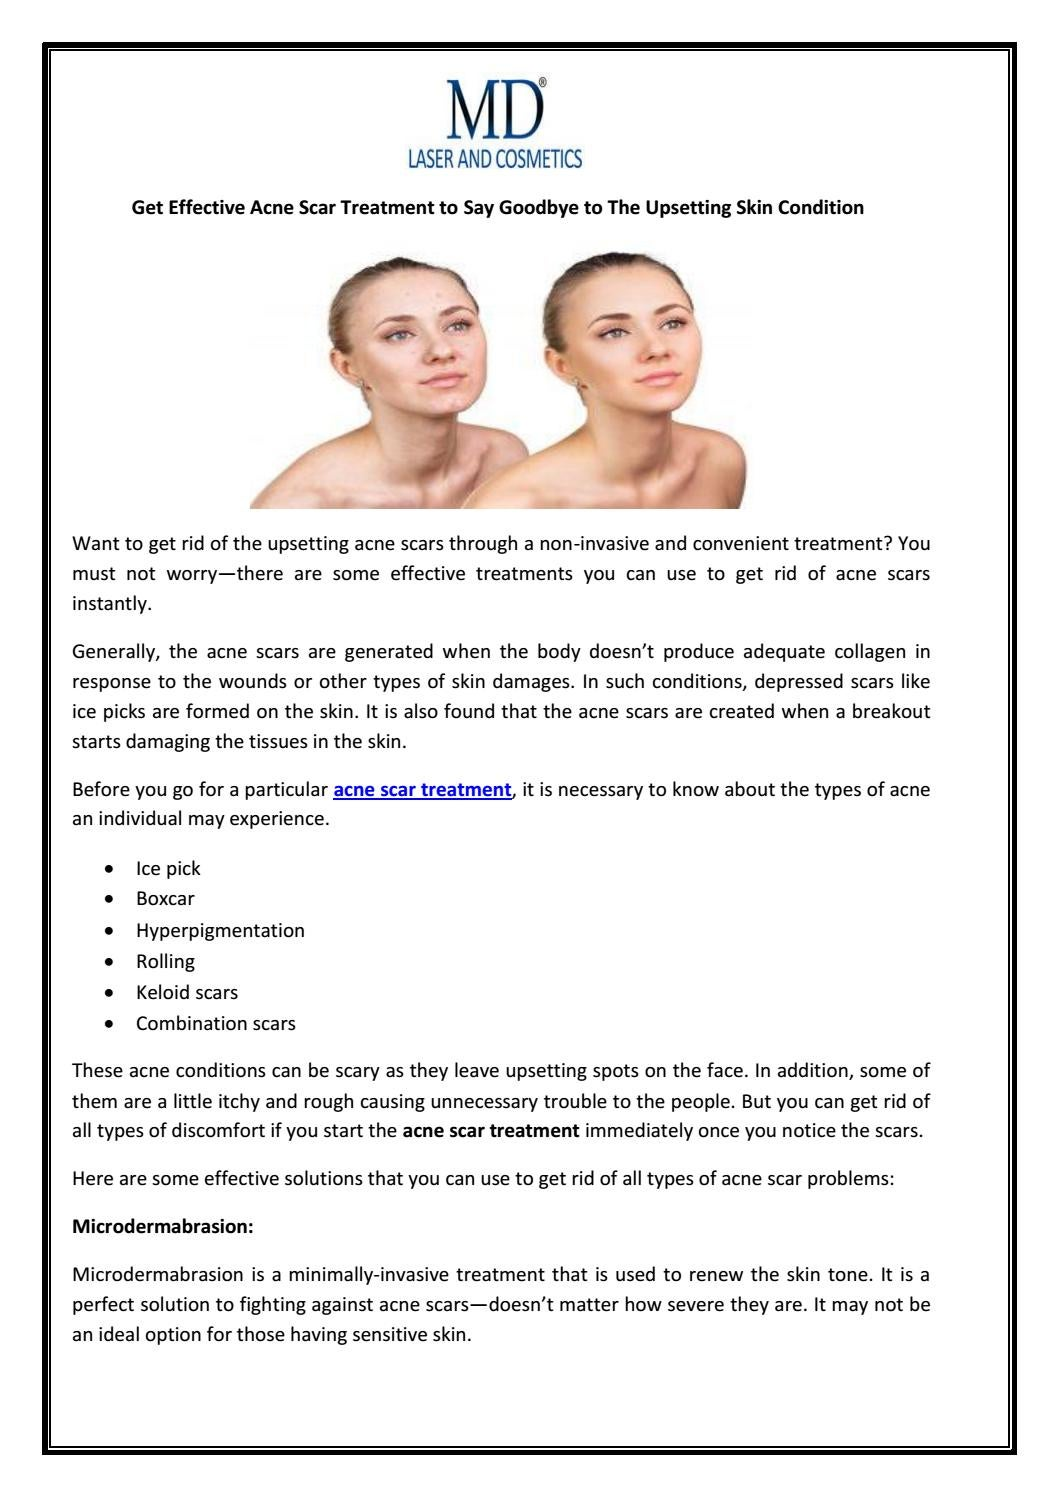 Get Effective Acne Scar Treatment to Say Goodbye to The